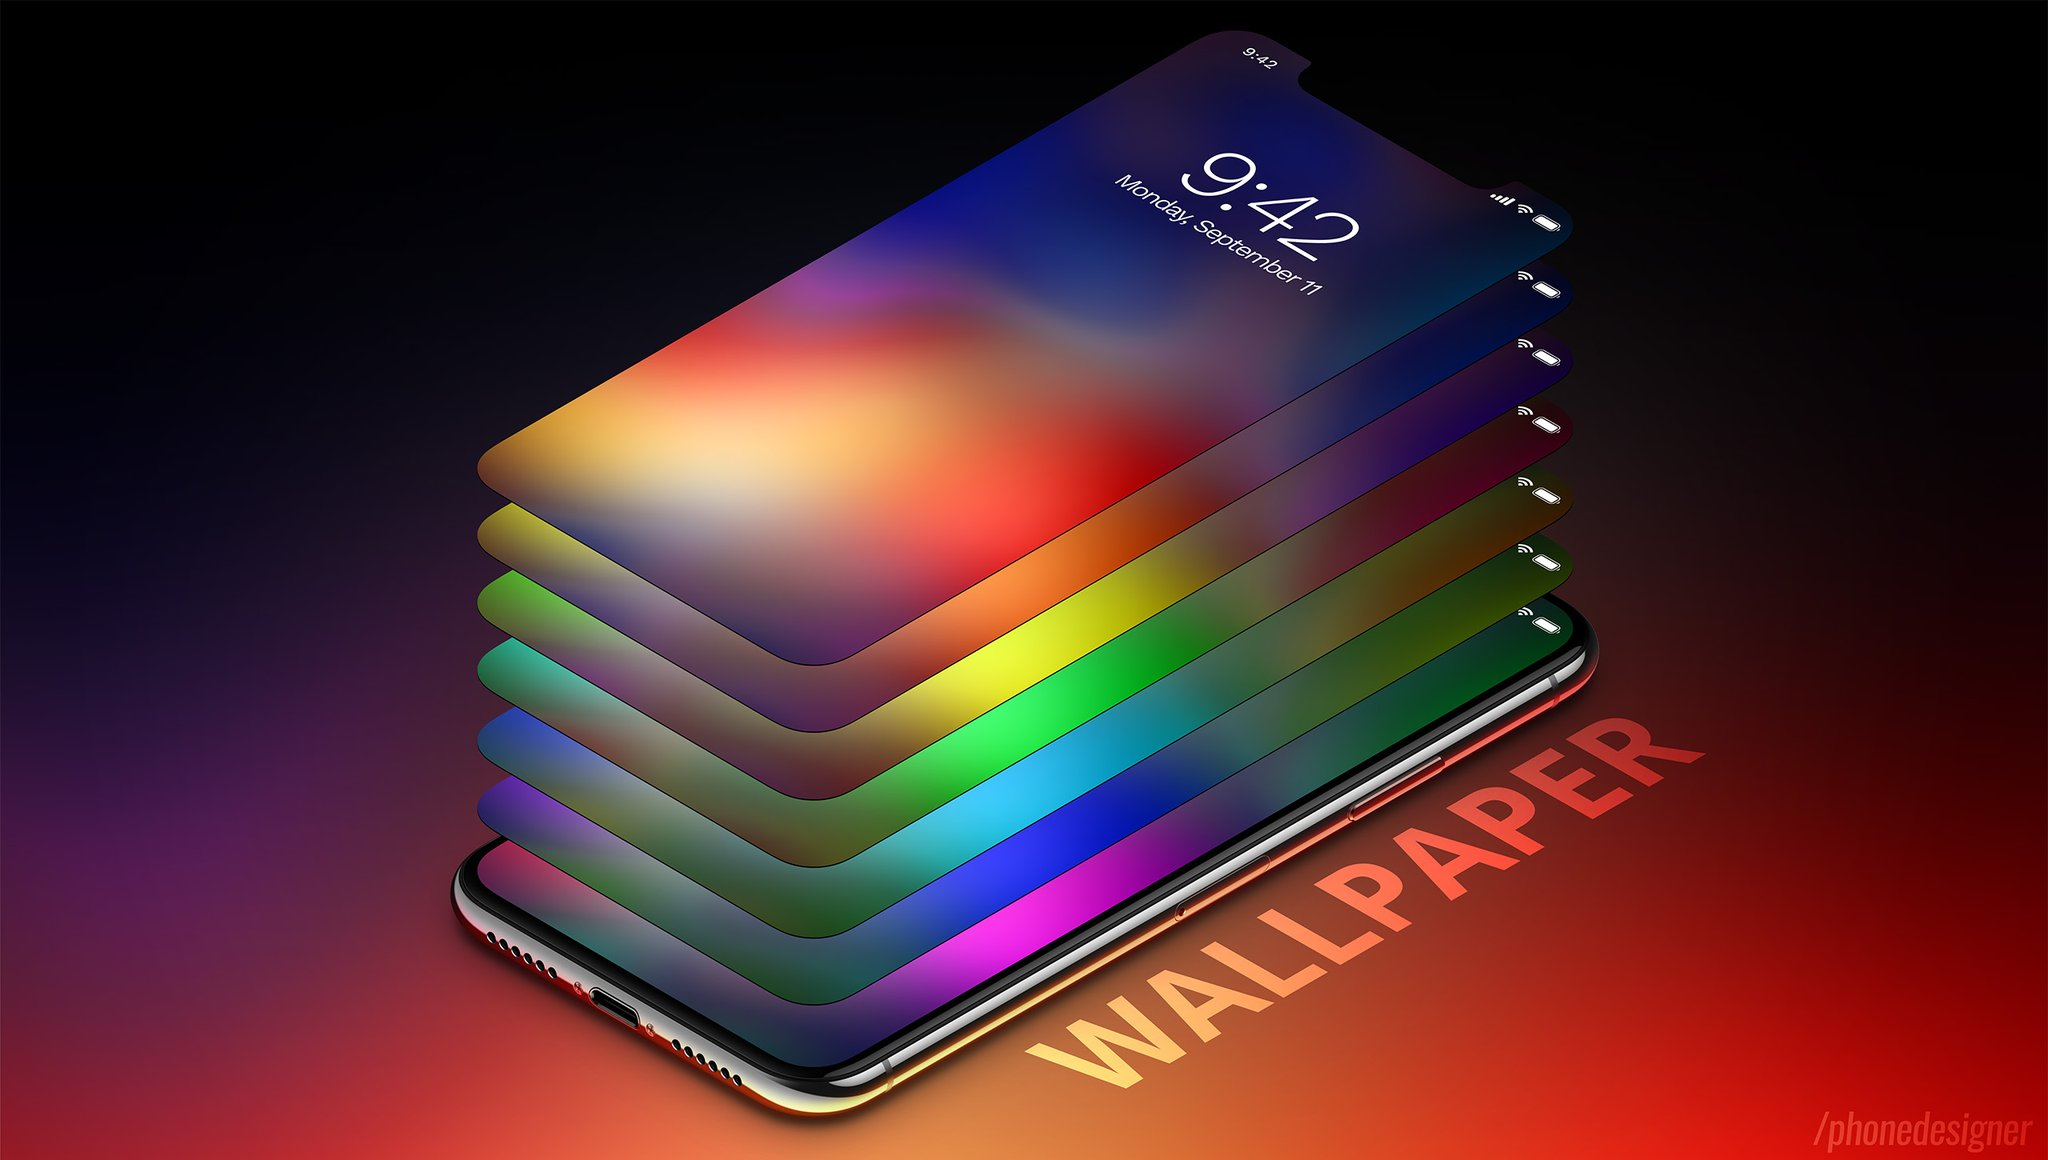 iPhone X inspired wallpaper pack     as the iPhone X pre order date comes in just 33 days  On October 27   pre orders will open with initial deliveries on November 3  The Wallpapers  of the